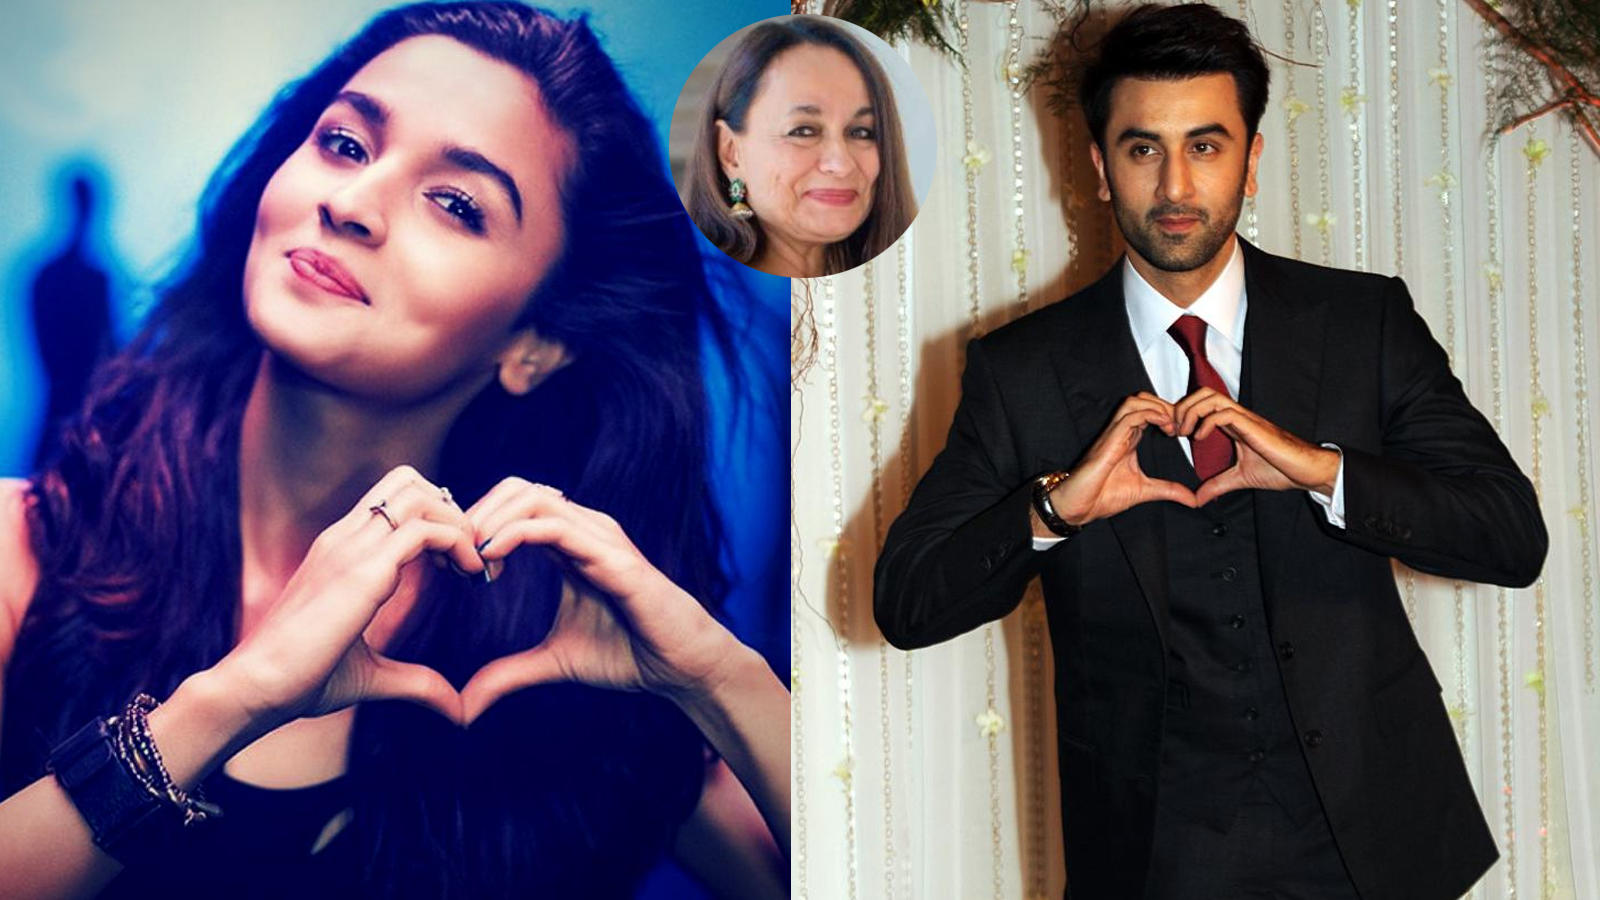 Alia Bhatt's mother Soni Razdan on her daughter's relationship with Ranbir Kapoor